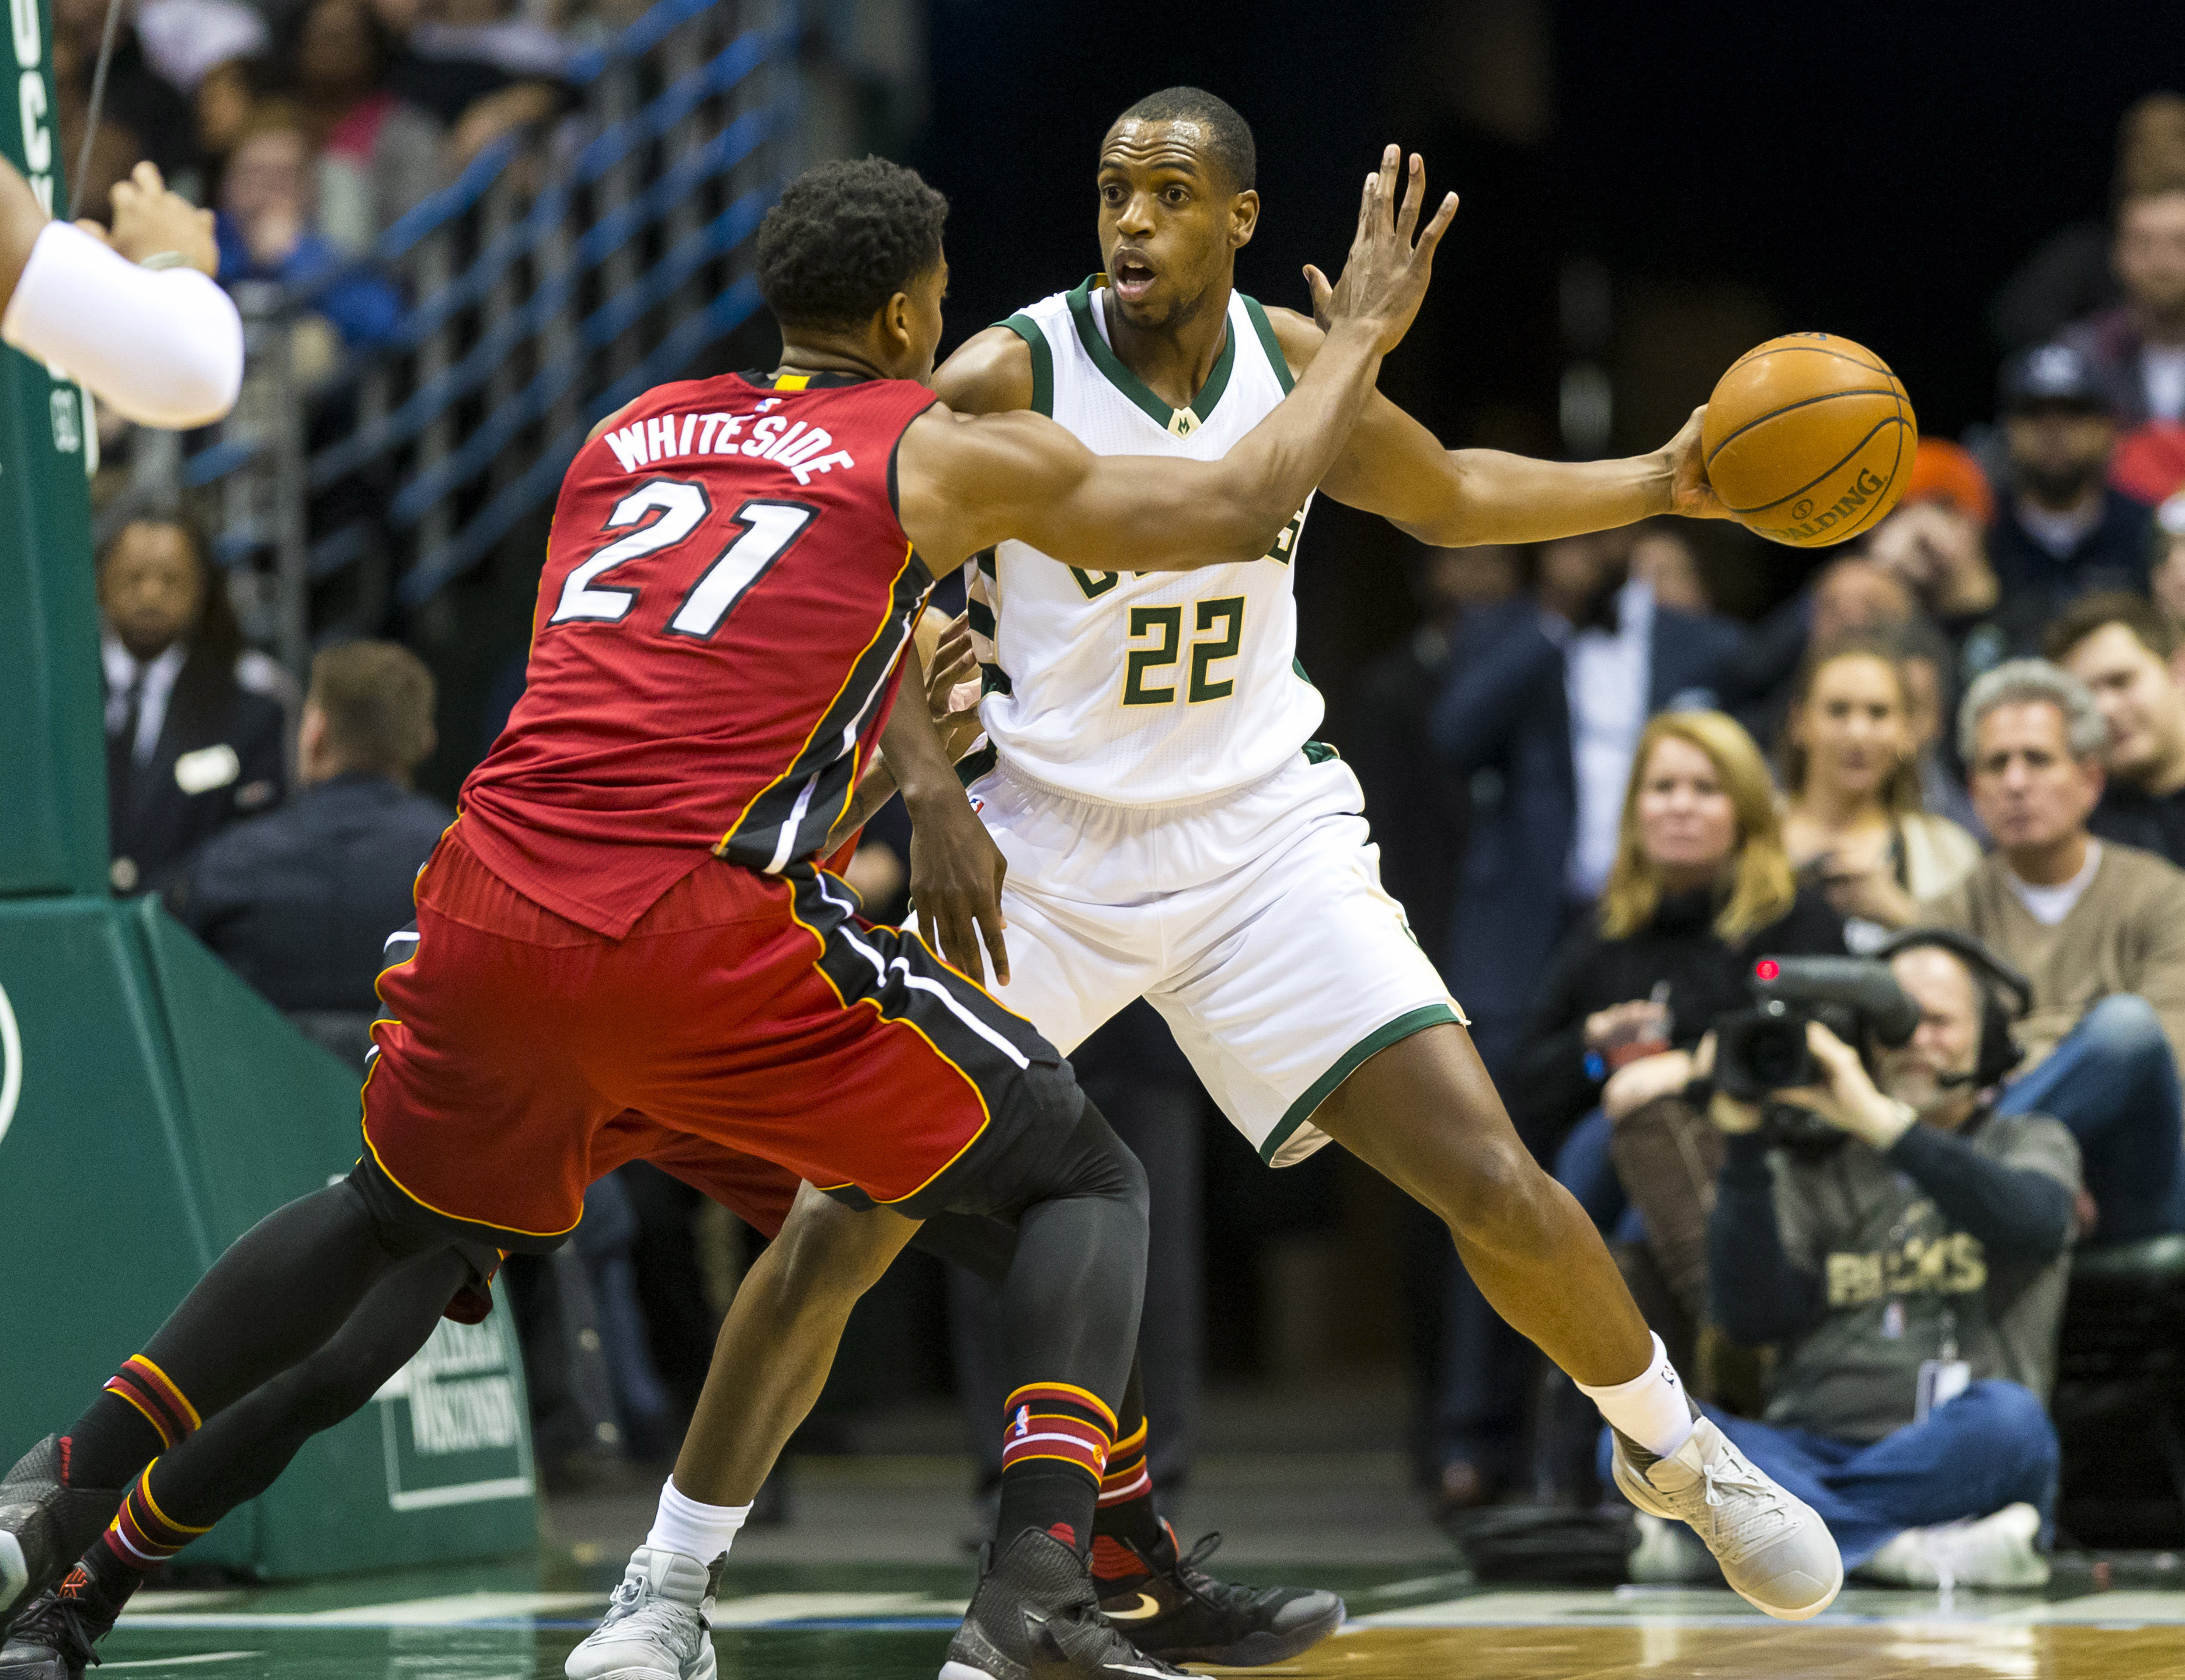 Feb 8, 2017; Milwaukee, WI, USA; Milwaukee Bucks guard Khris Middleton (22) passes the ball around Miami Heat center Hassan Whiteside (21) during the first quarter at BMO Harris Bradley Center. Mandatory Credit: Jeff Hanisch-USA TODAY Sports